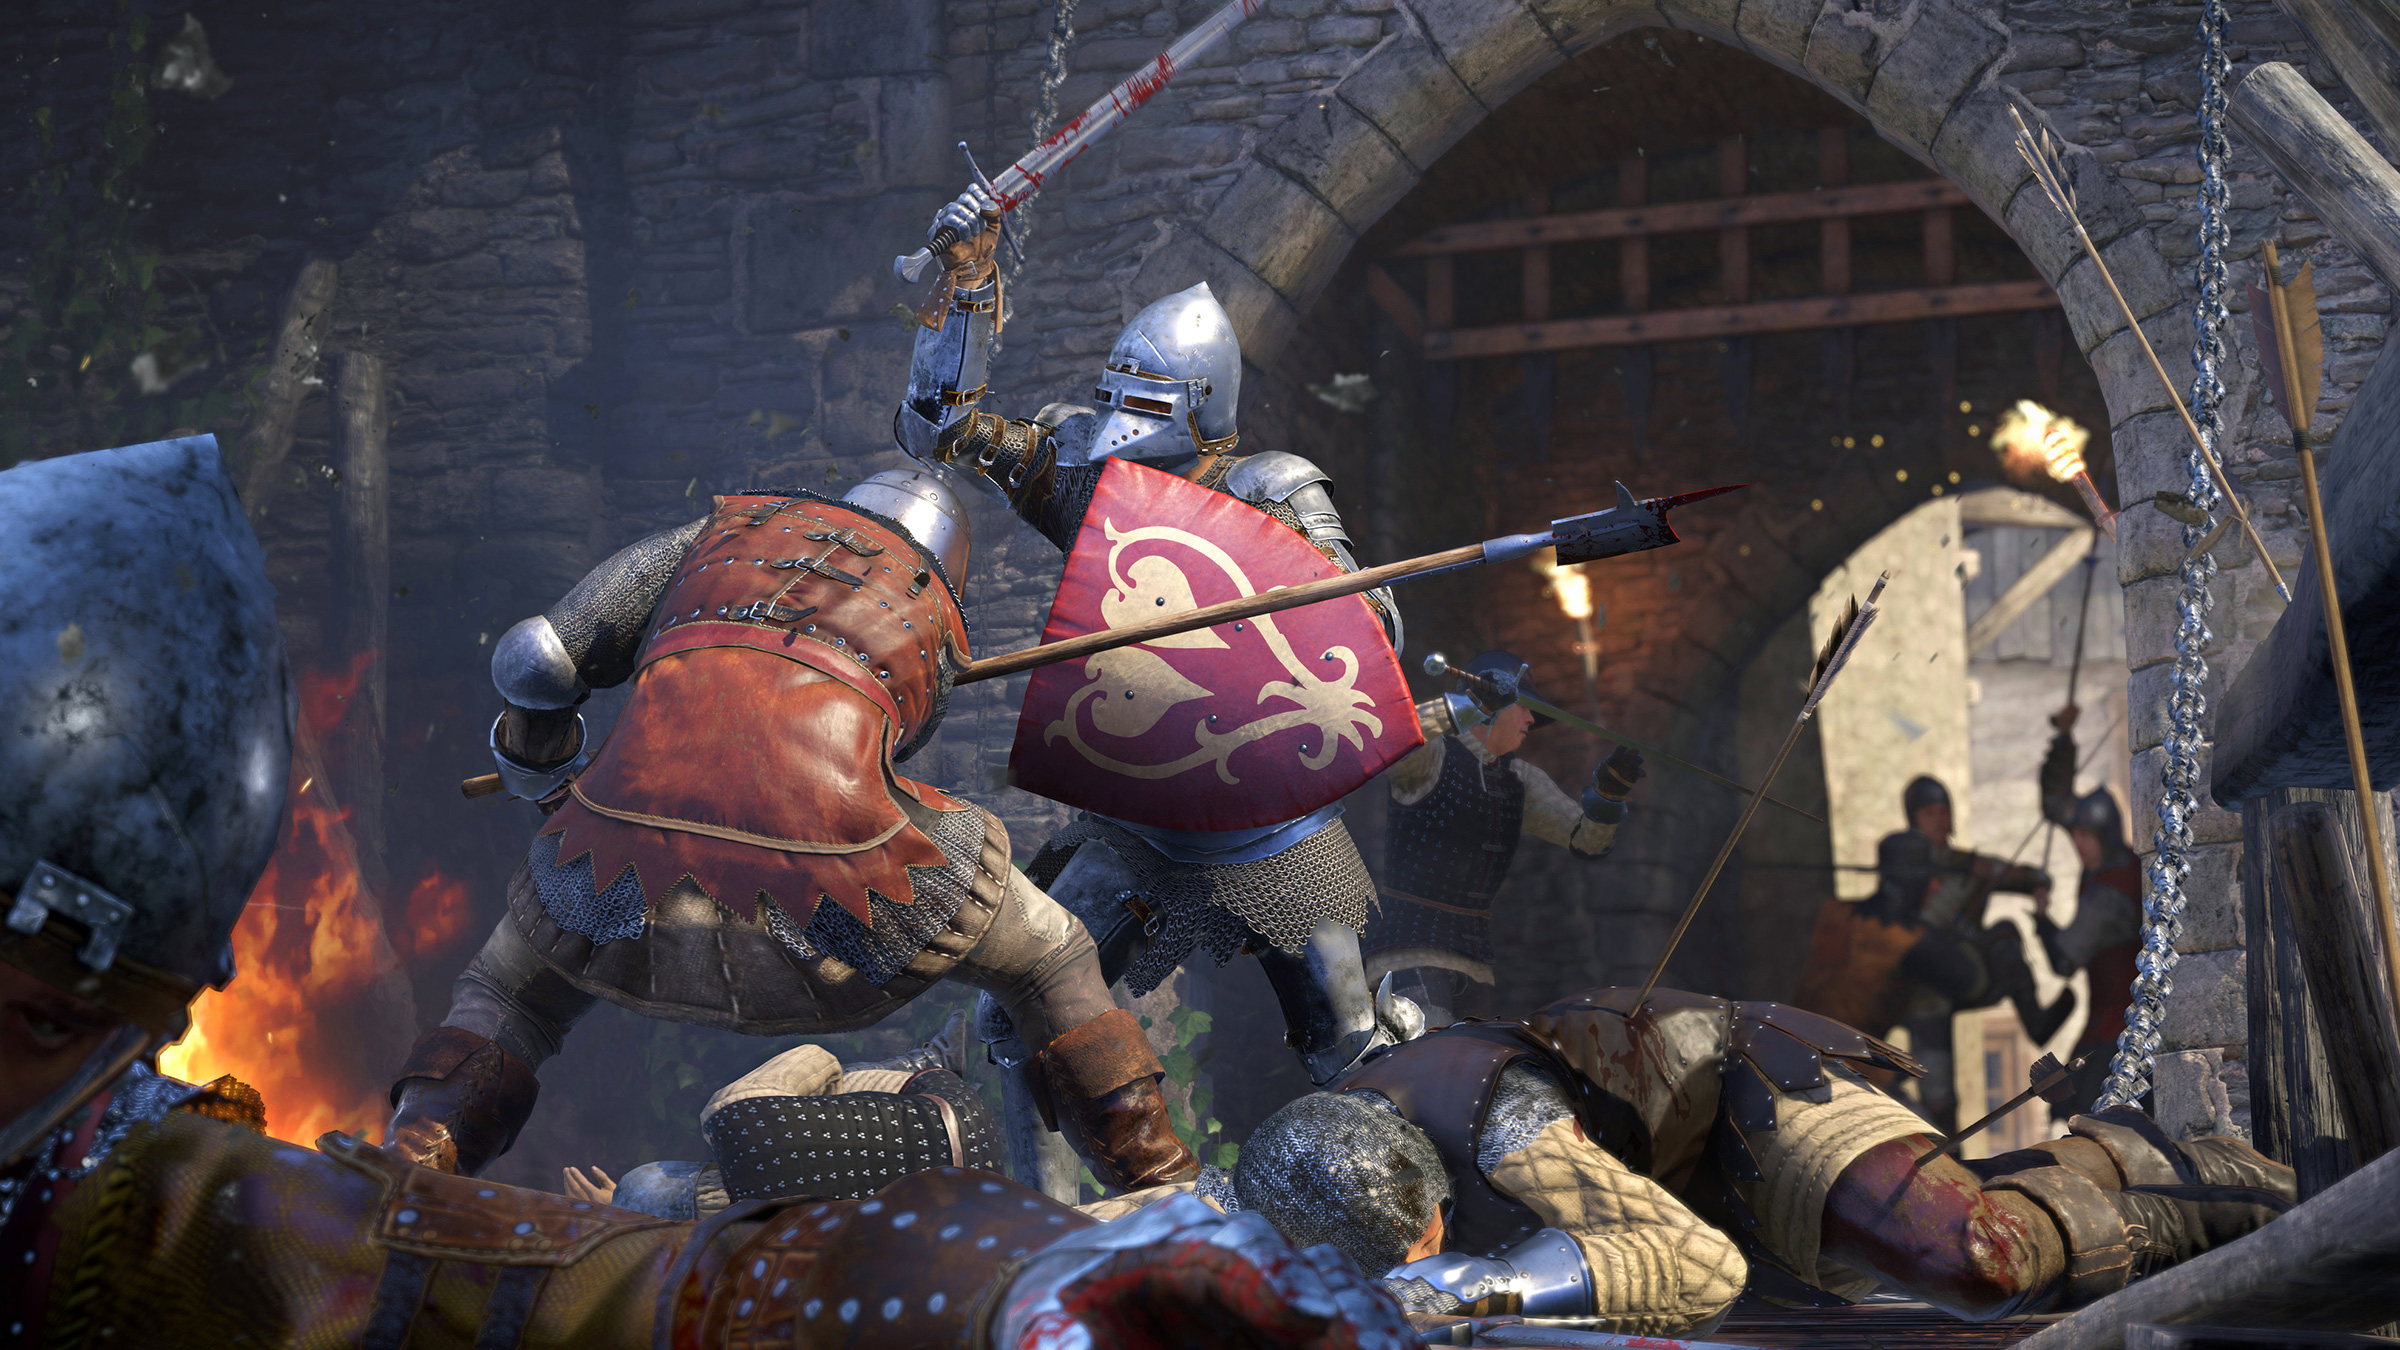 bitva rytířů ve hře Kingdom Come: Deliverance